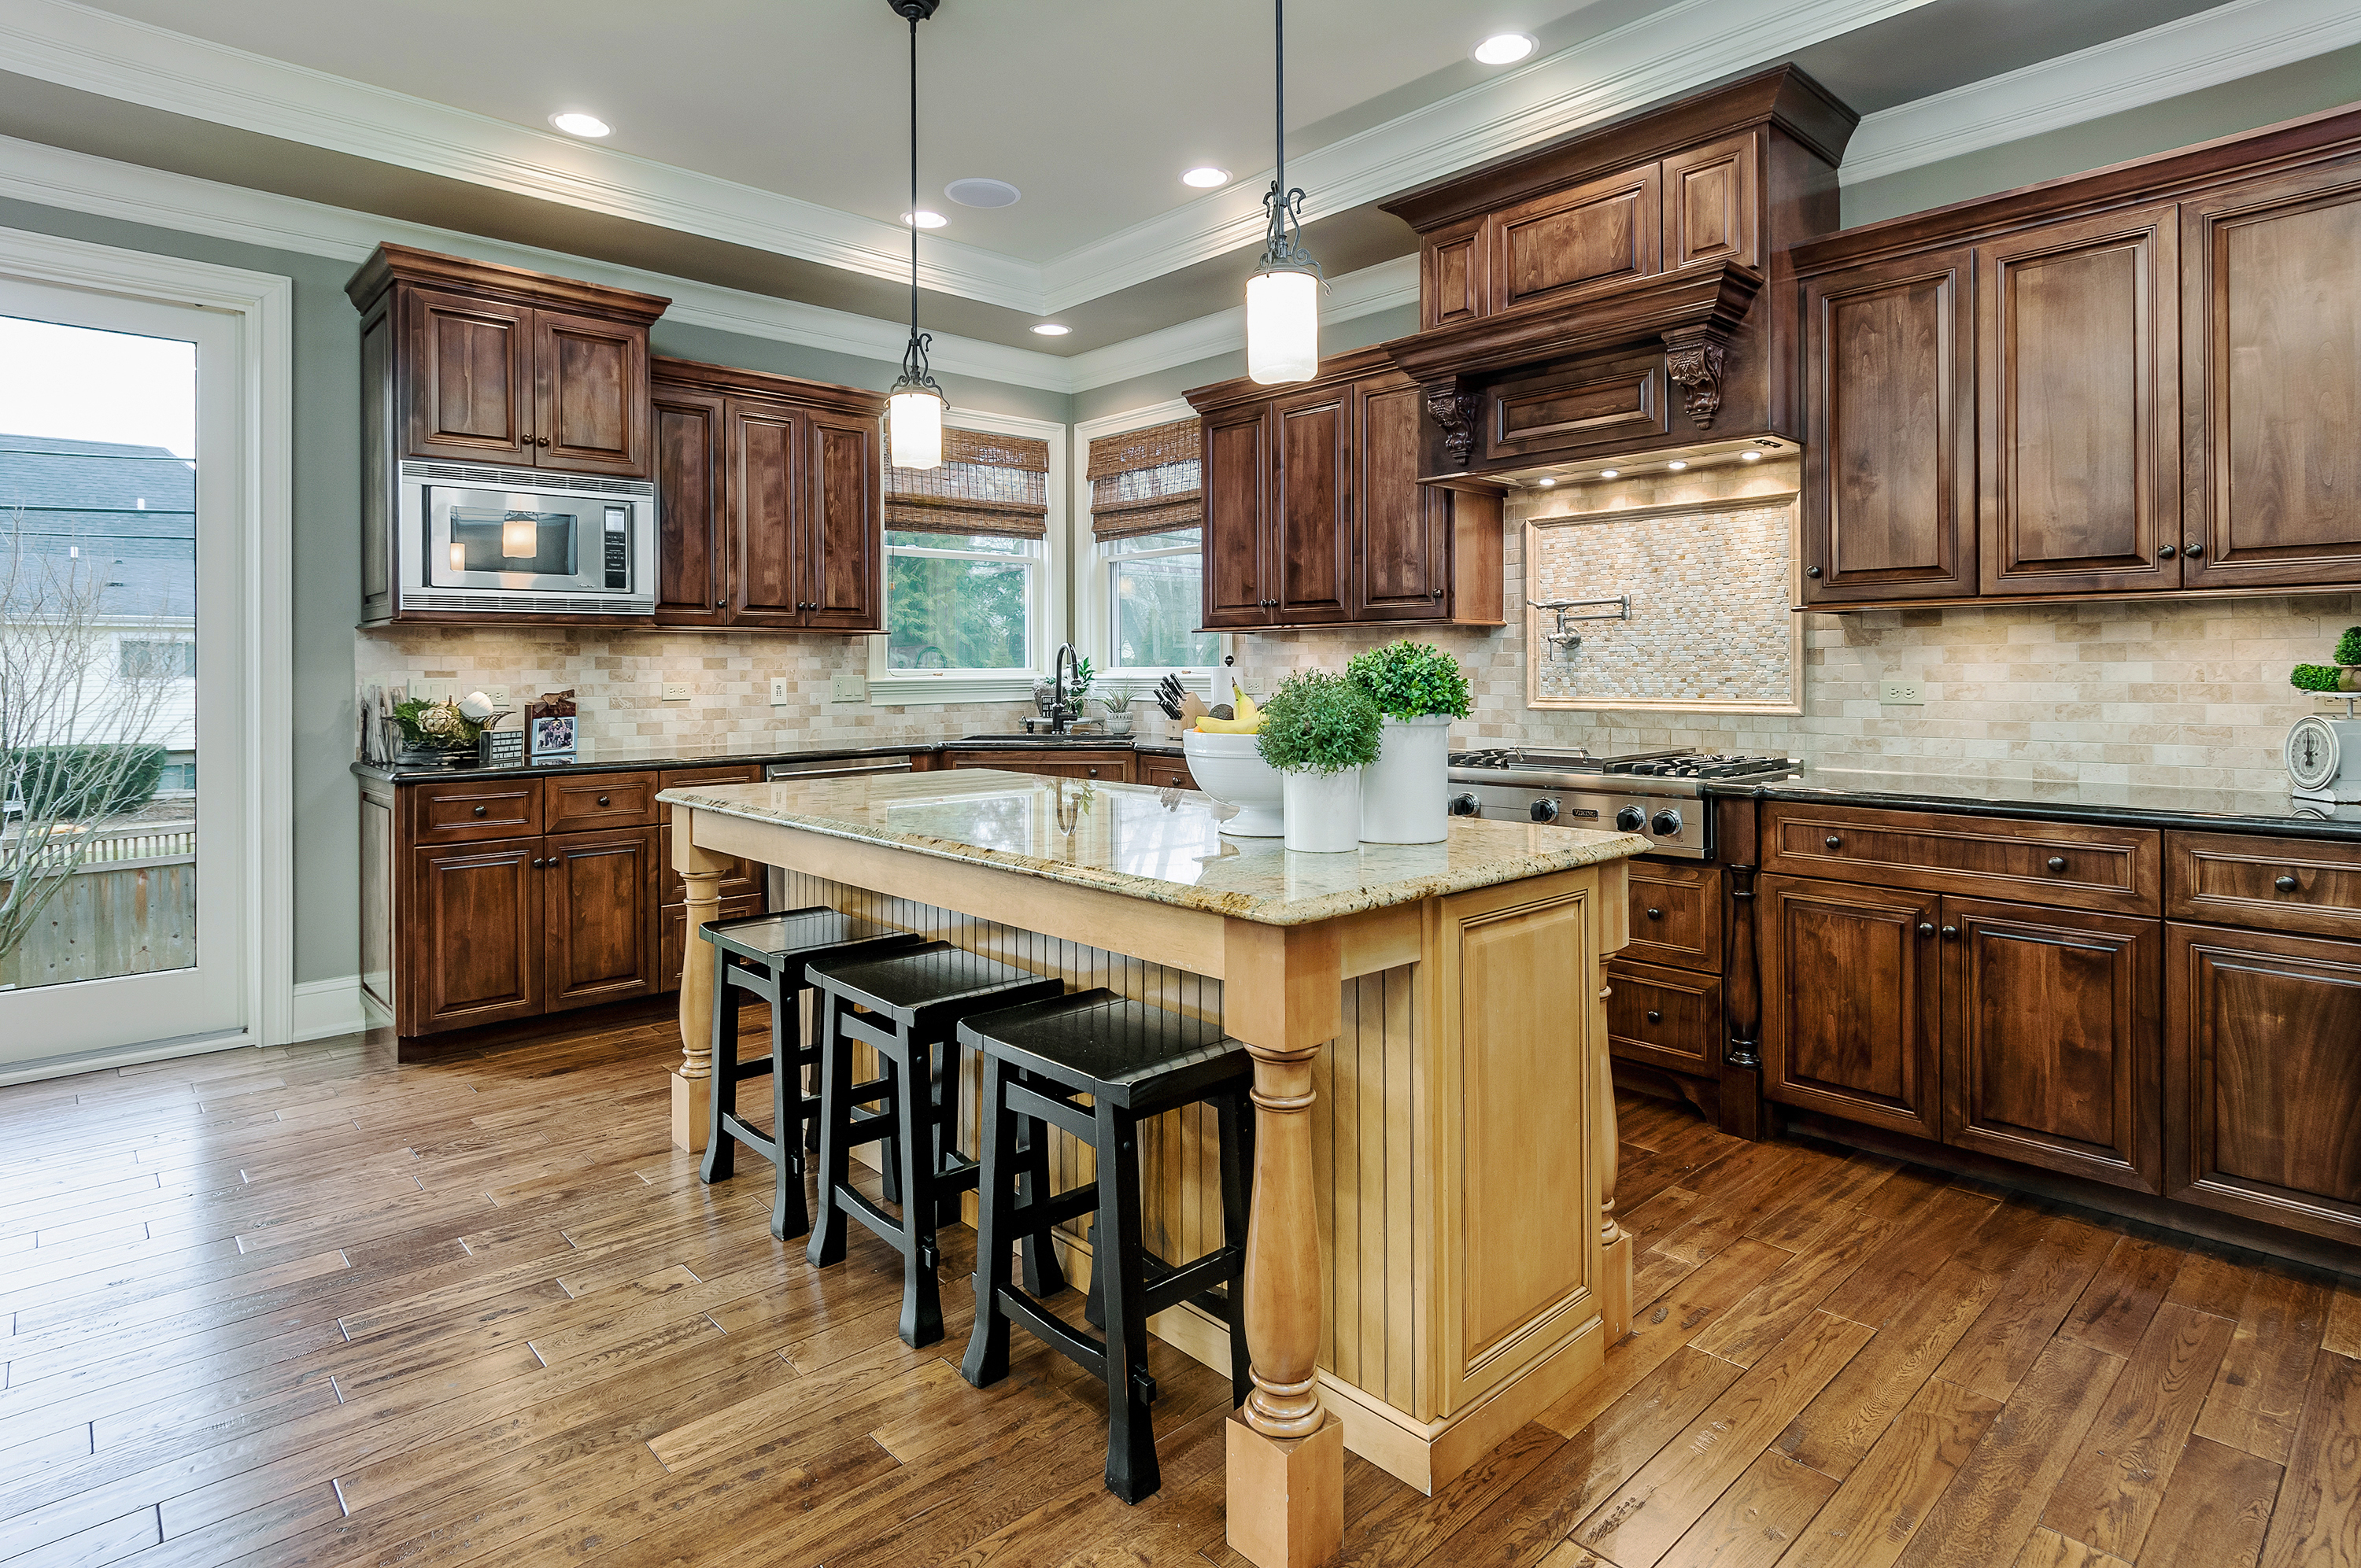 Potpourri of New Images. Another great Naperville, Illinois kitchen